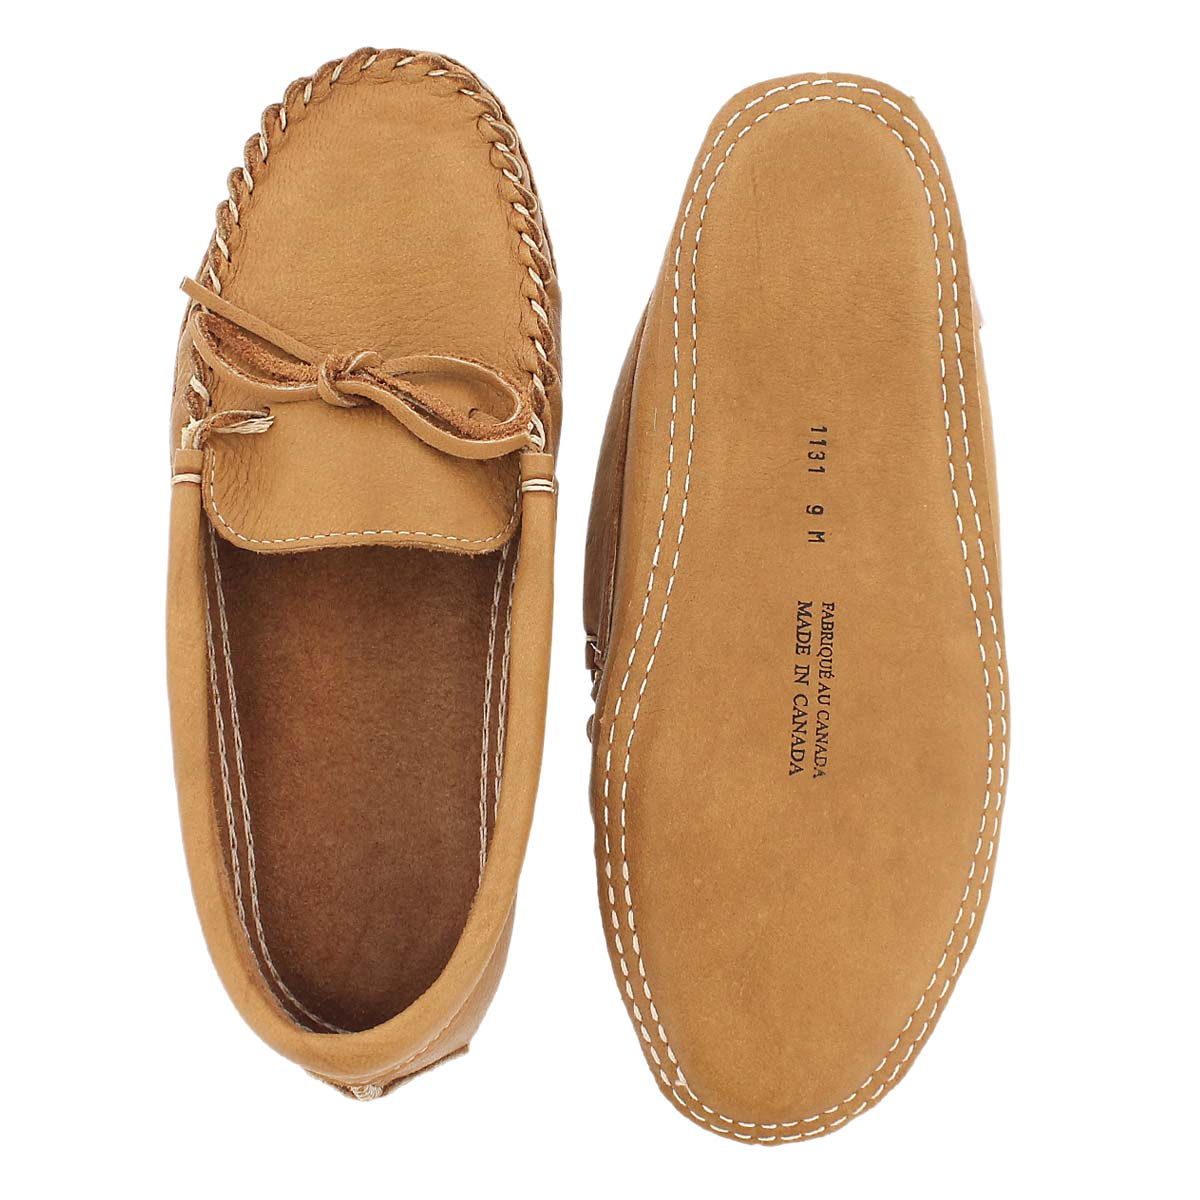 Mns cork double sole moosehide moc